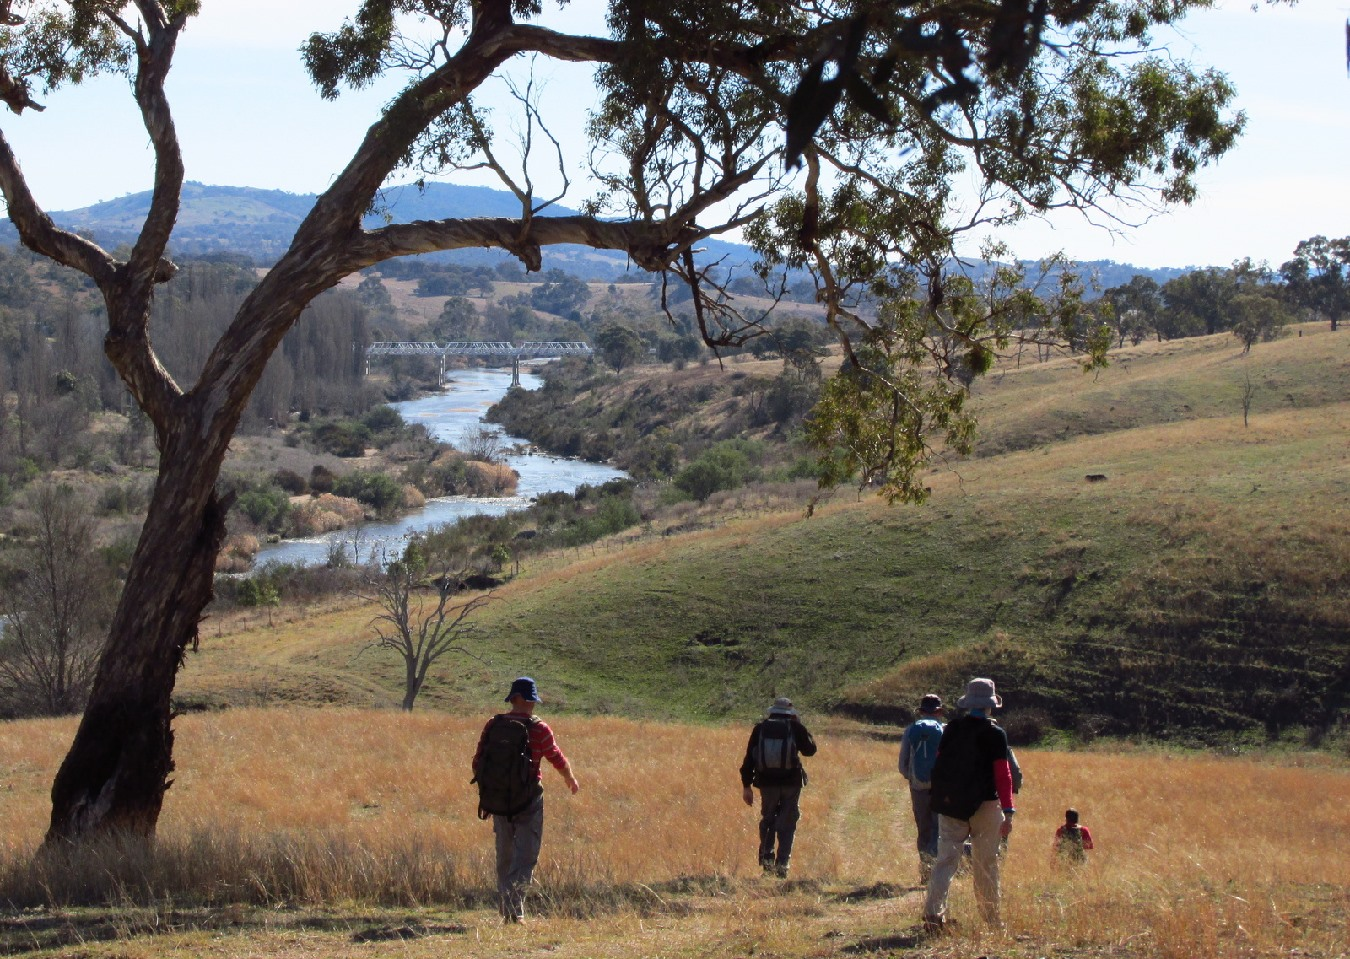 Grassy track walking beside the Murrumbidgee River near Tharwa, by Mike Bremers